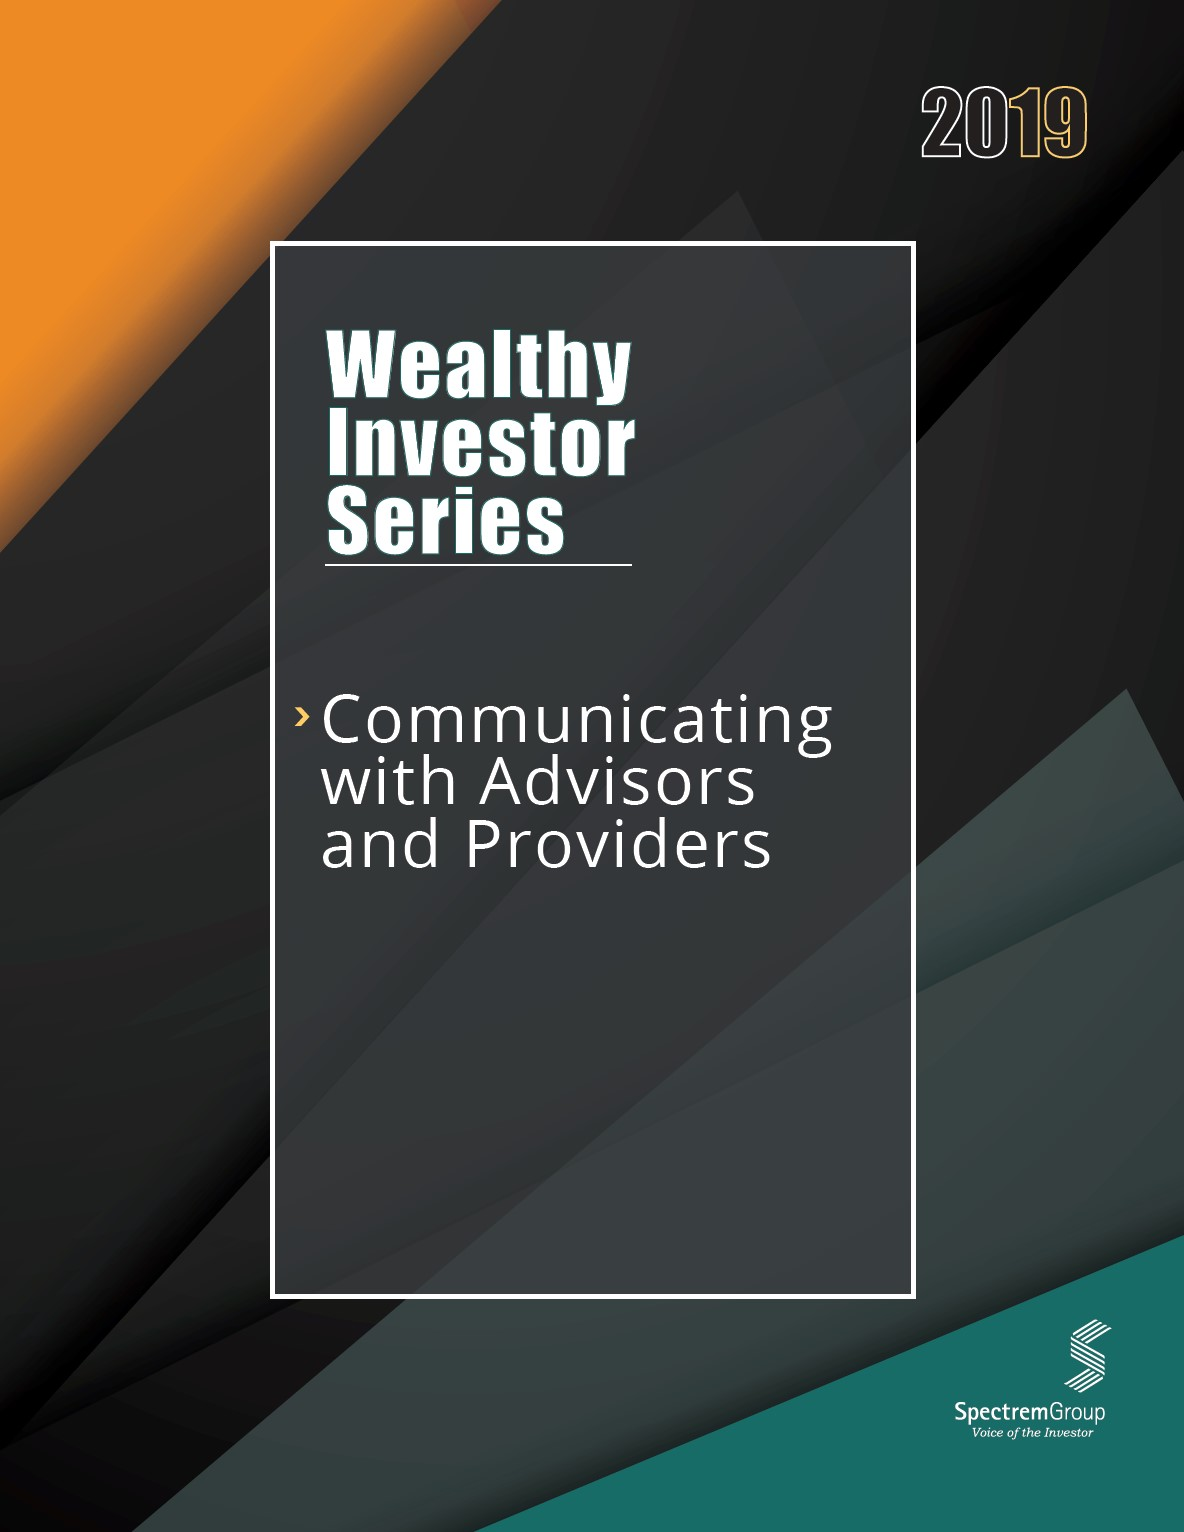 Wealthy Investor Series: Communicating with Advisors and Providers